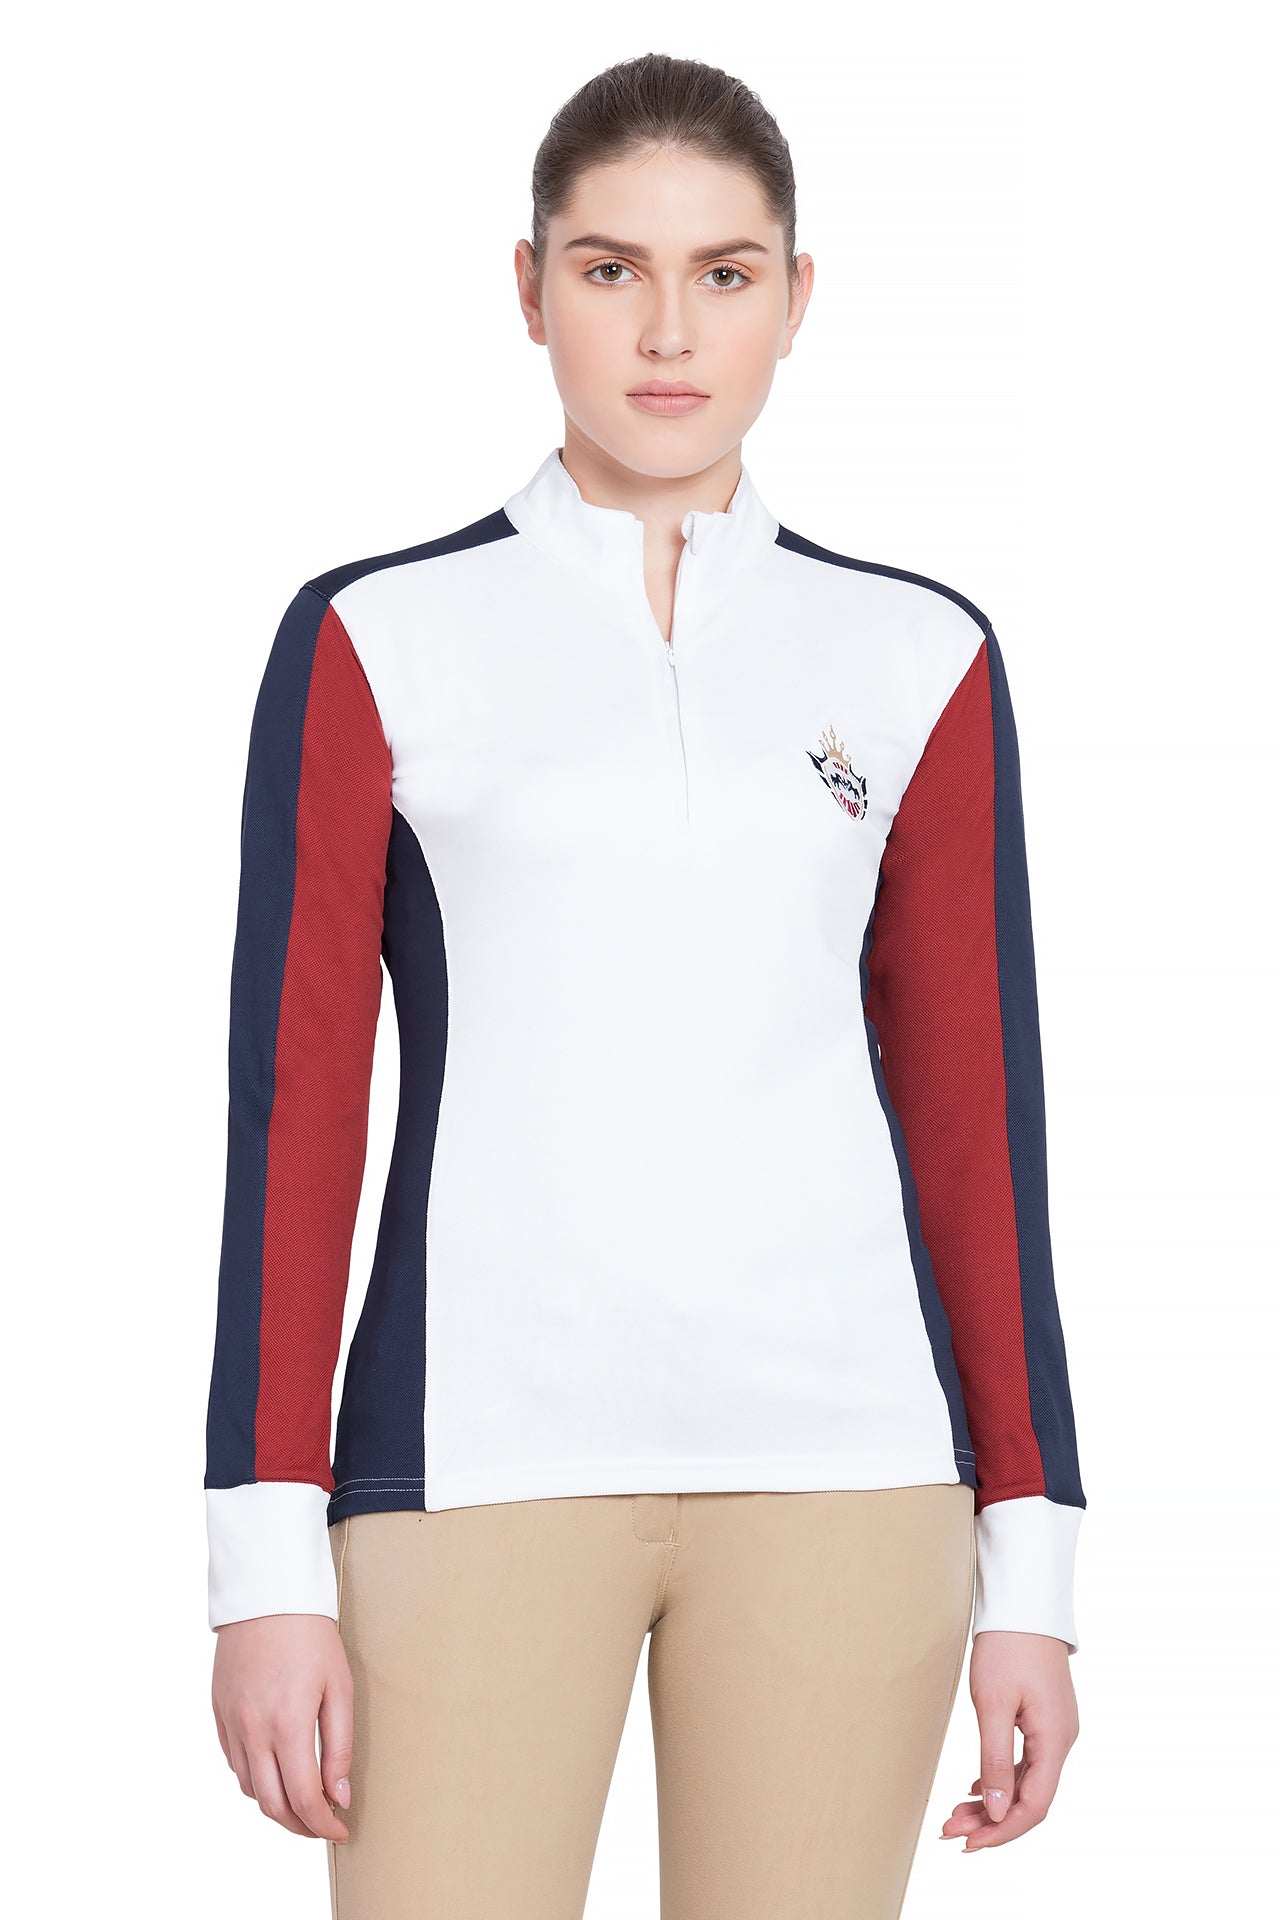 Equine Couture Ladies Dennison Long Sleeve Sport Shirt - Equine Couture - Breeches.com